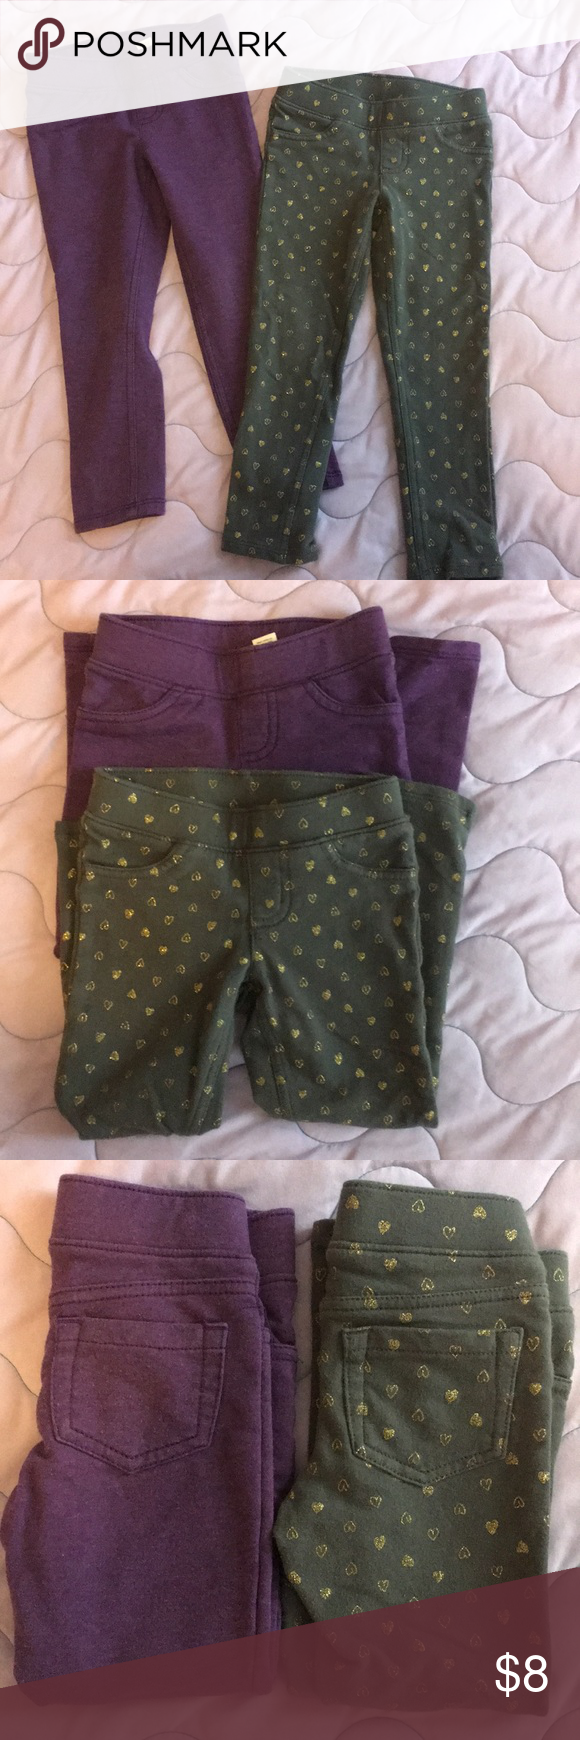 Jumping Beans from Kohl's Jeggings Jumping Beans from Kohl